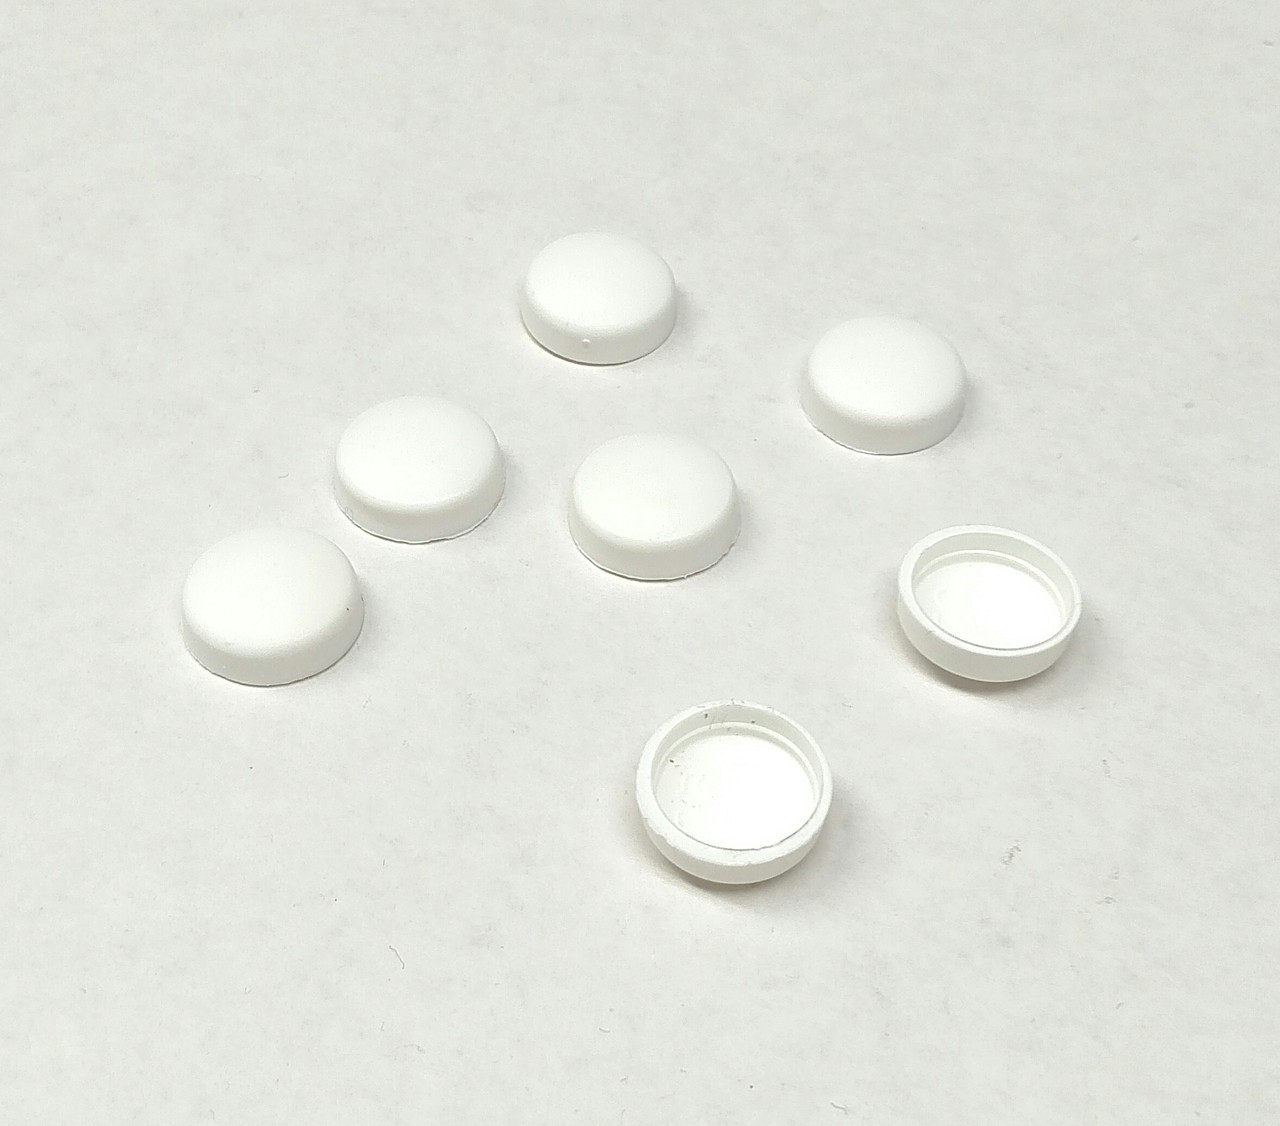 #12 Snap-Cap White & Flat Base/Washer - 25 per Pack